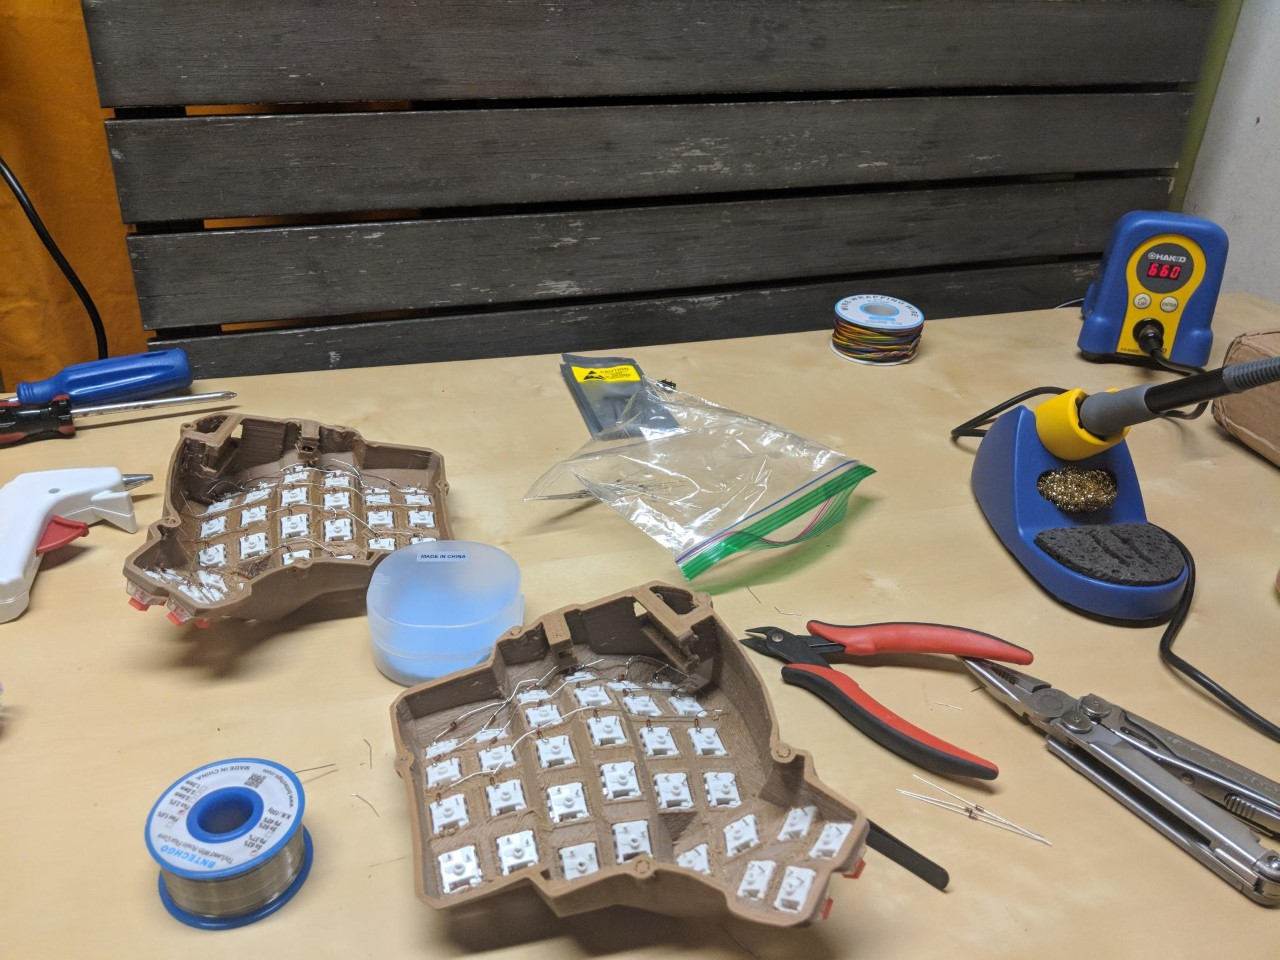 Dactyl Manuform Build Log  U2022 Nick Green